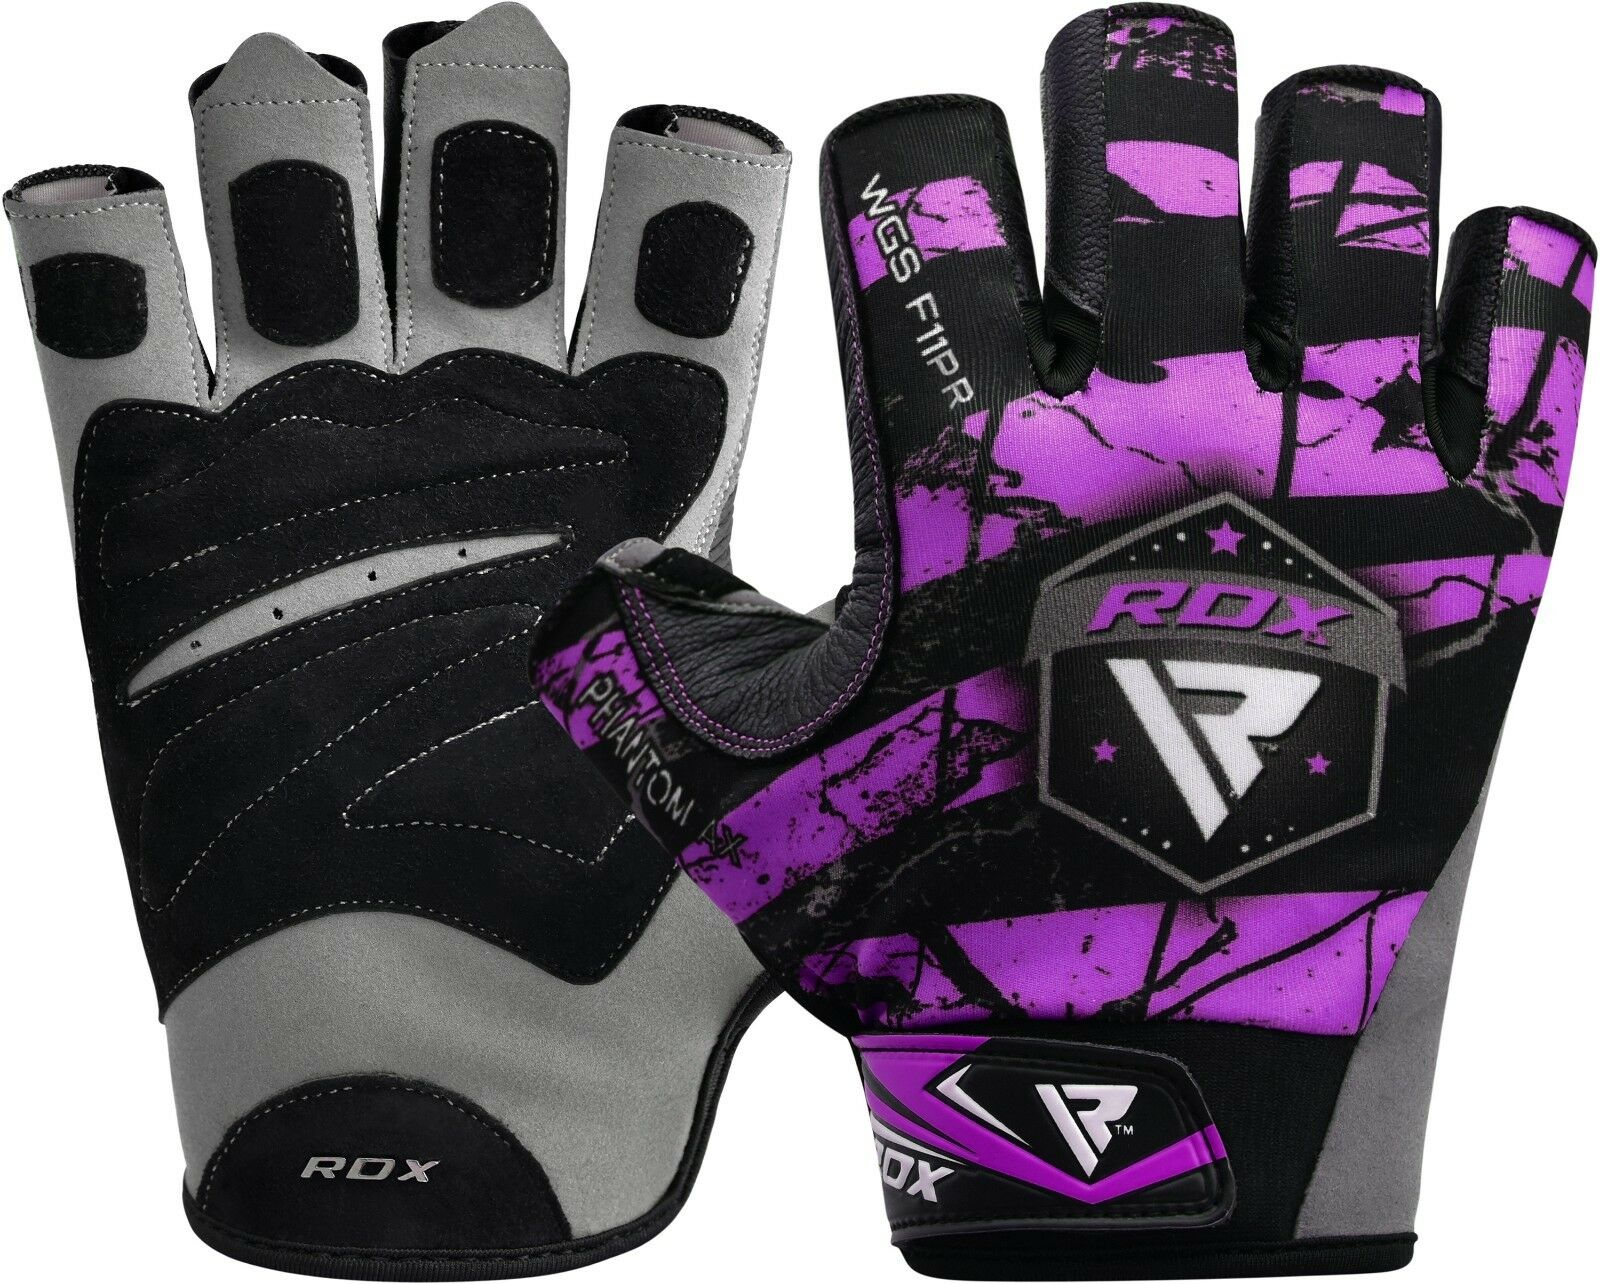 Rdx Weight Lifting Gloves Training Bodybuilding Gym Power: RDX LADIES WEIGHT Lifting Gloves Women Fitness Yoga Gym